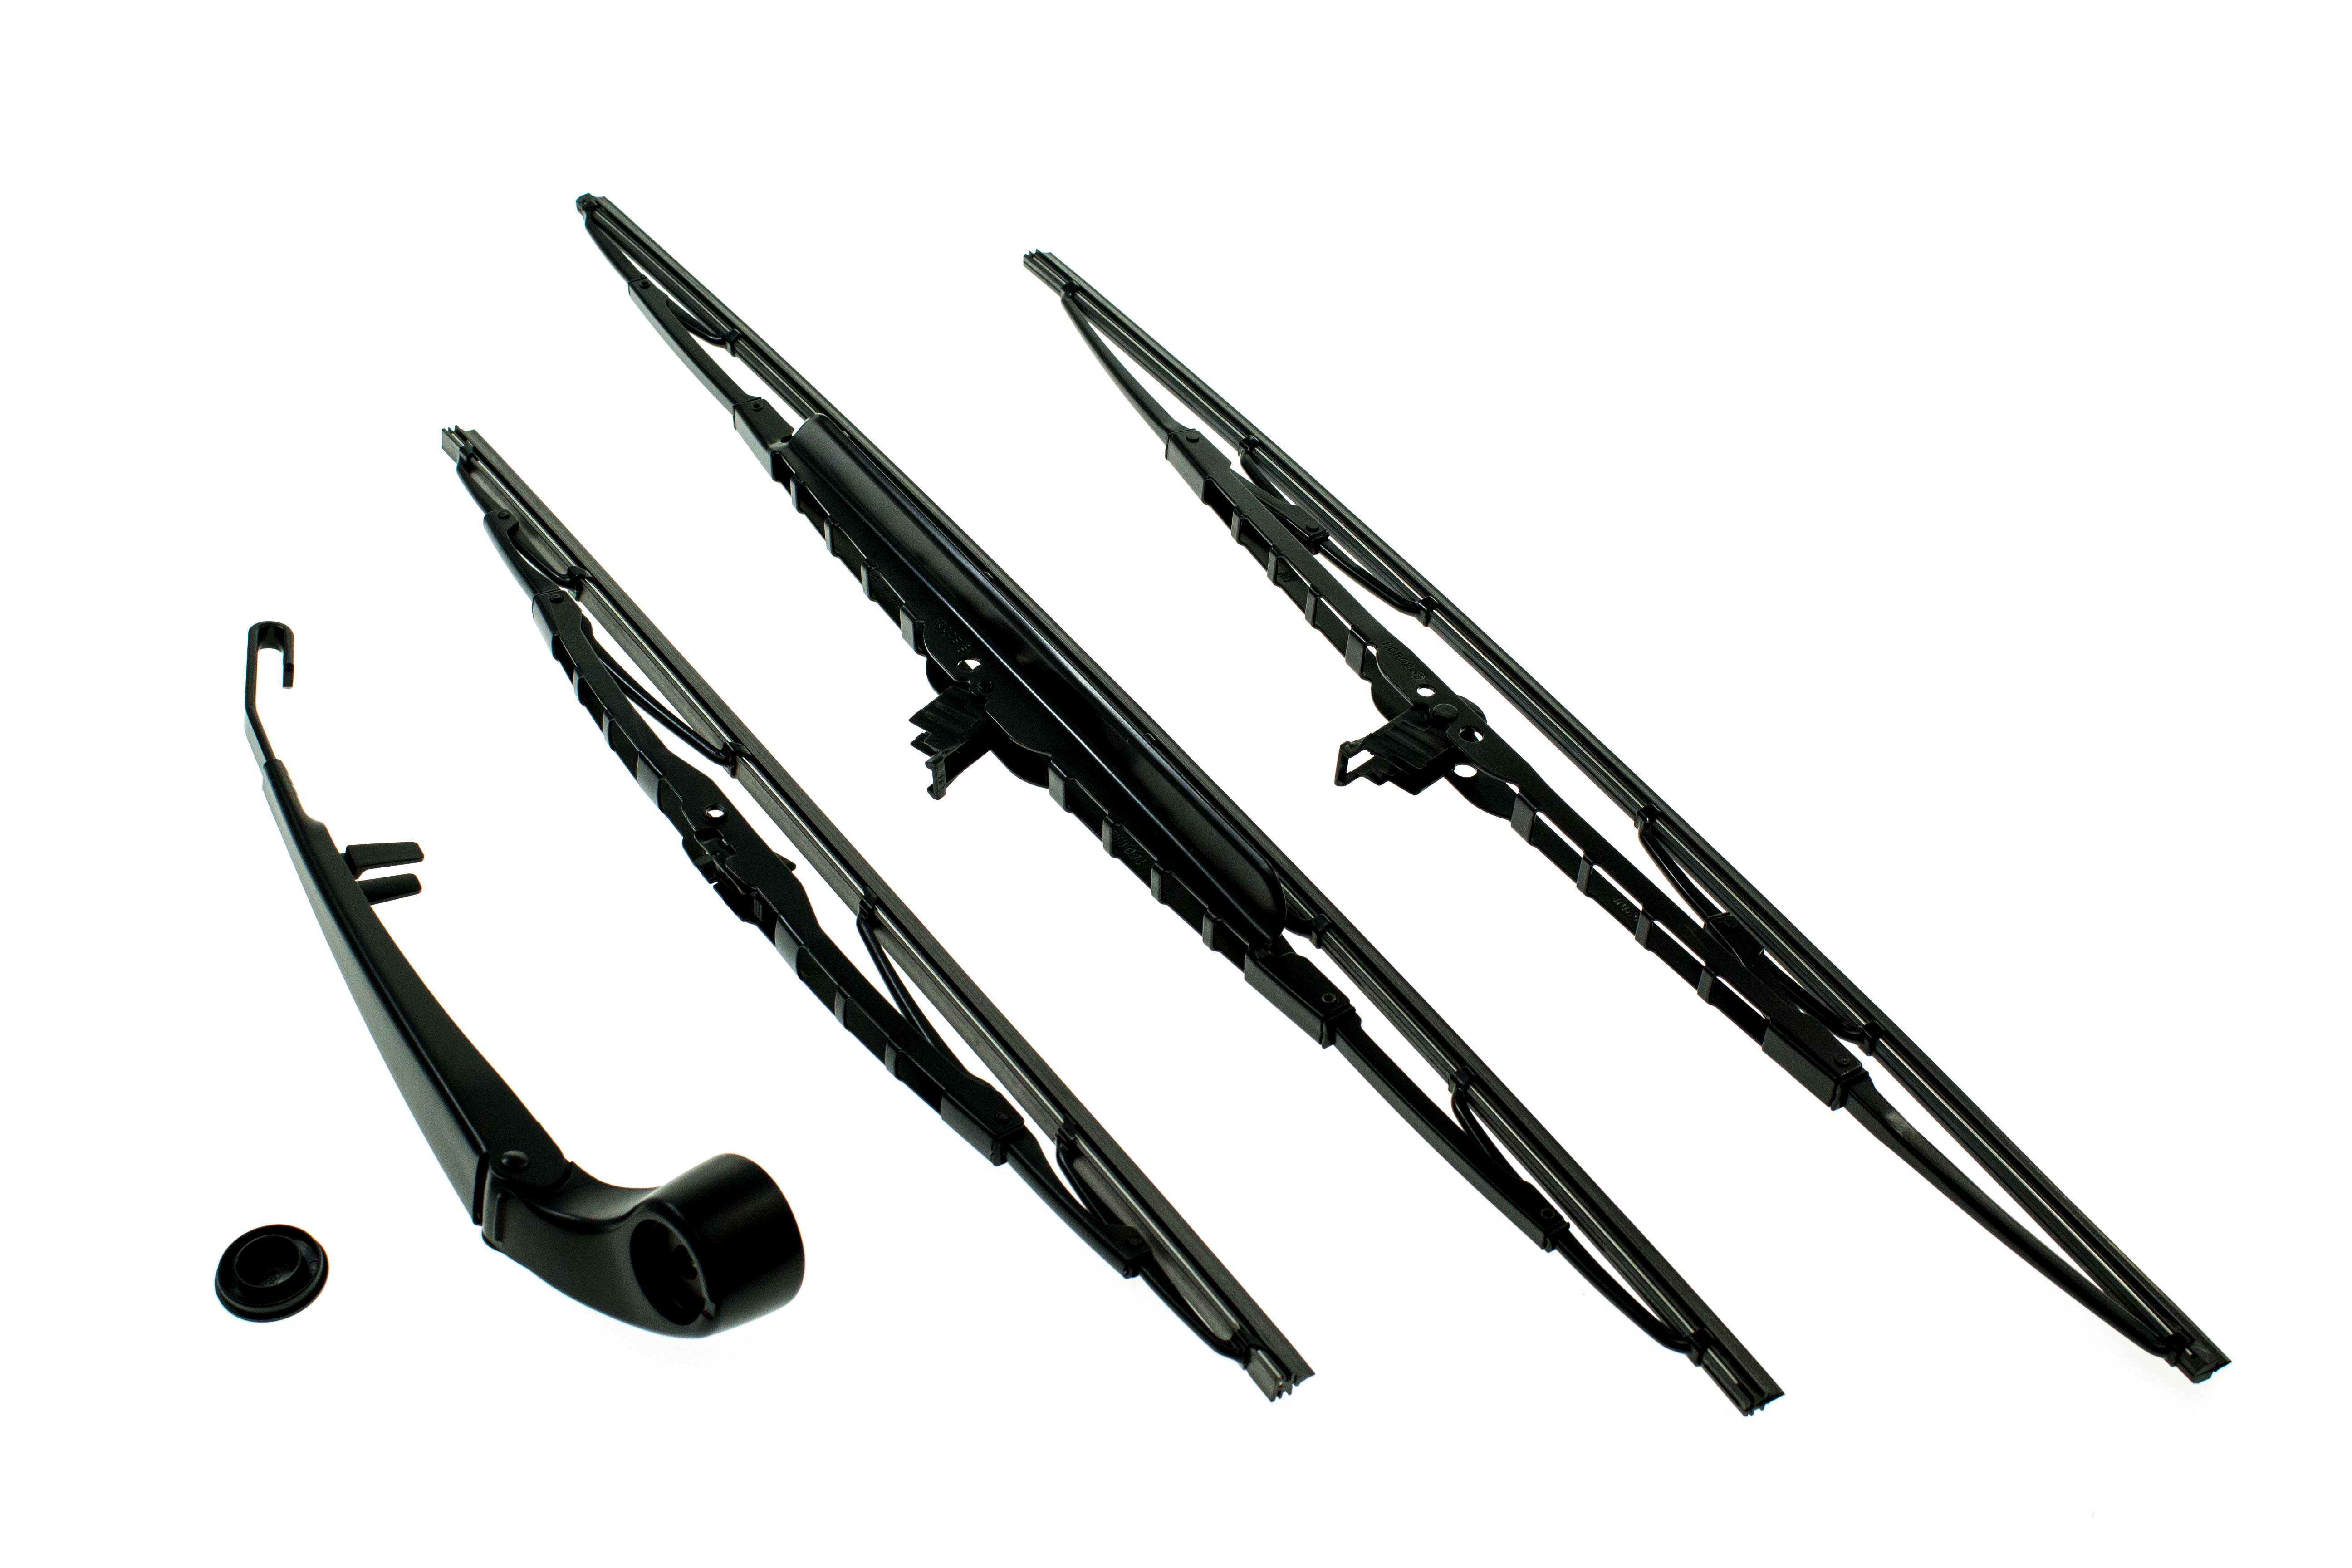 aaz preferred e53wiperkit windshield wiper blade set  front and rear blades  rear arm  kit